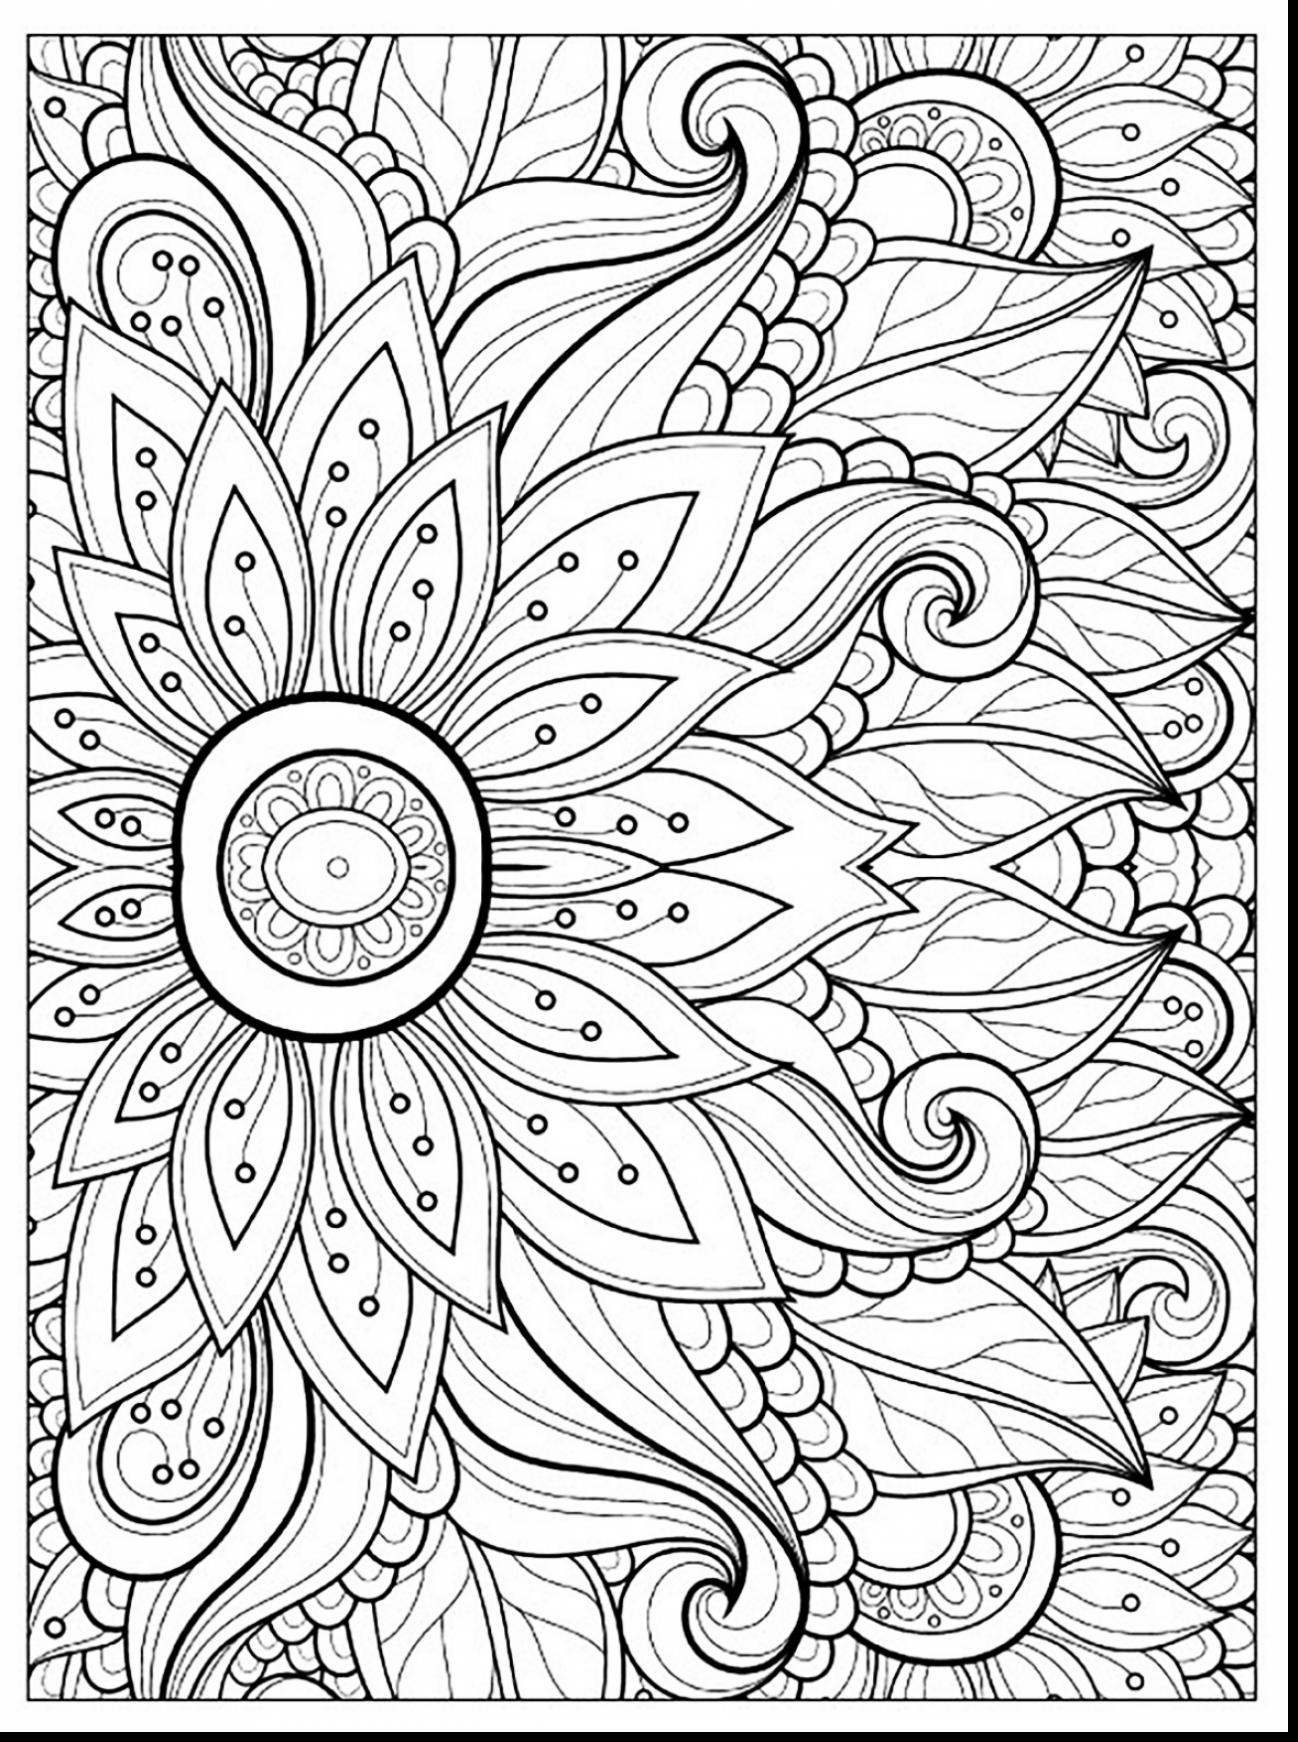 Flower Coloring Pages – coloring.rocks!